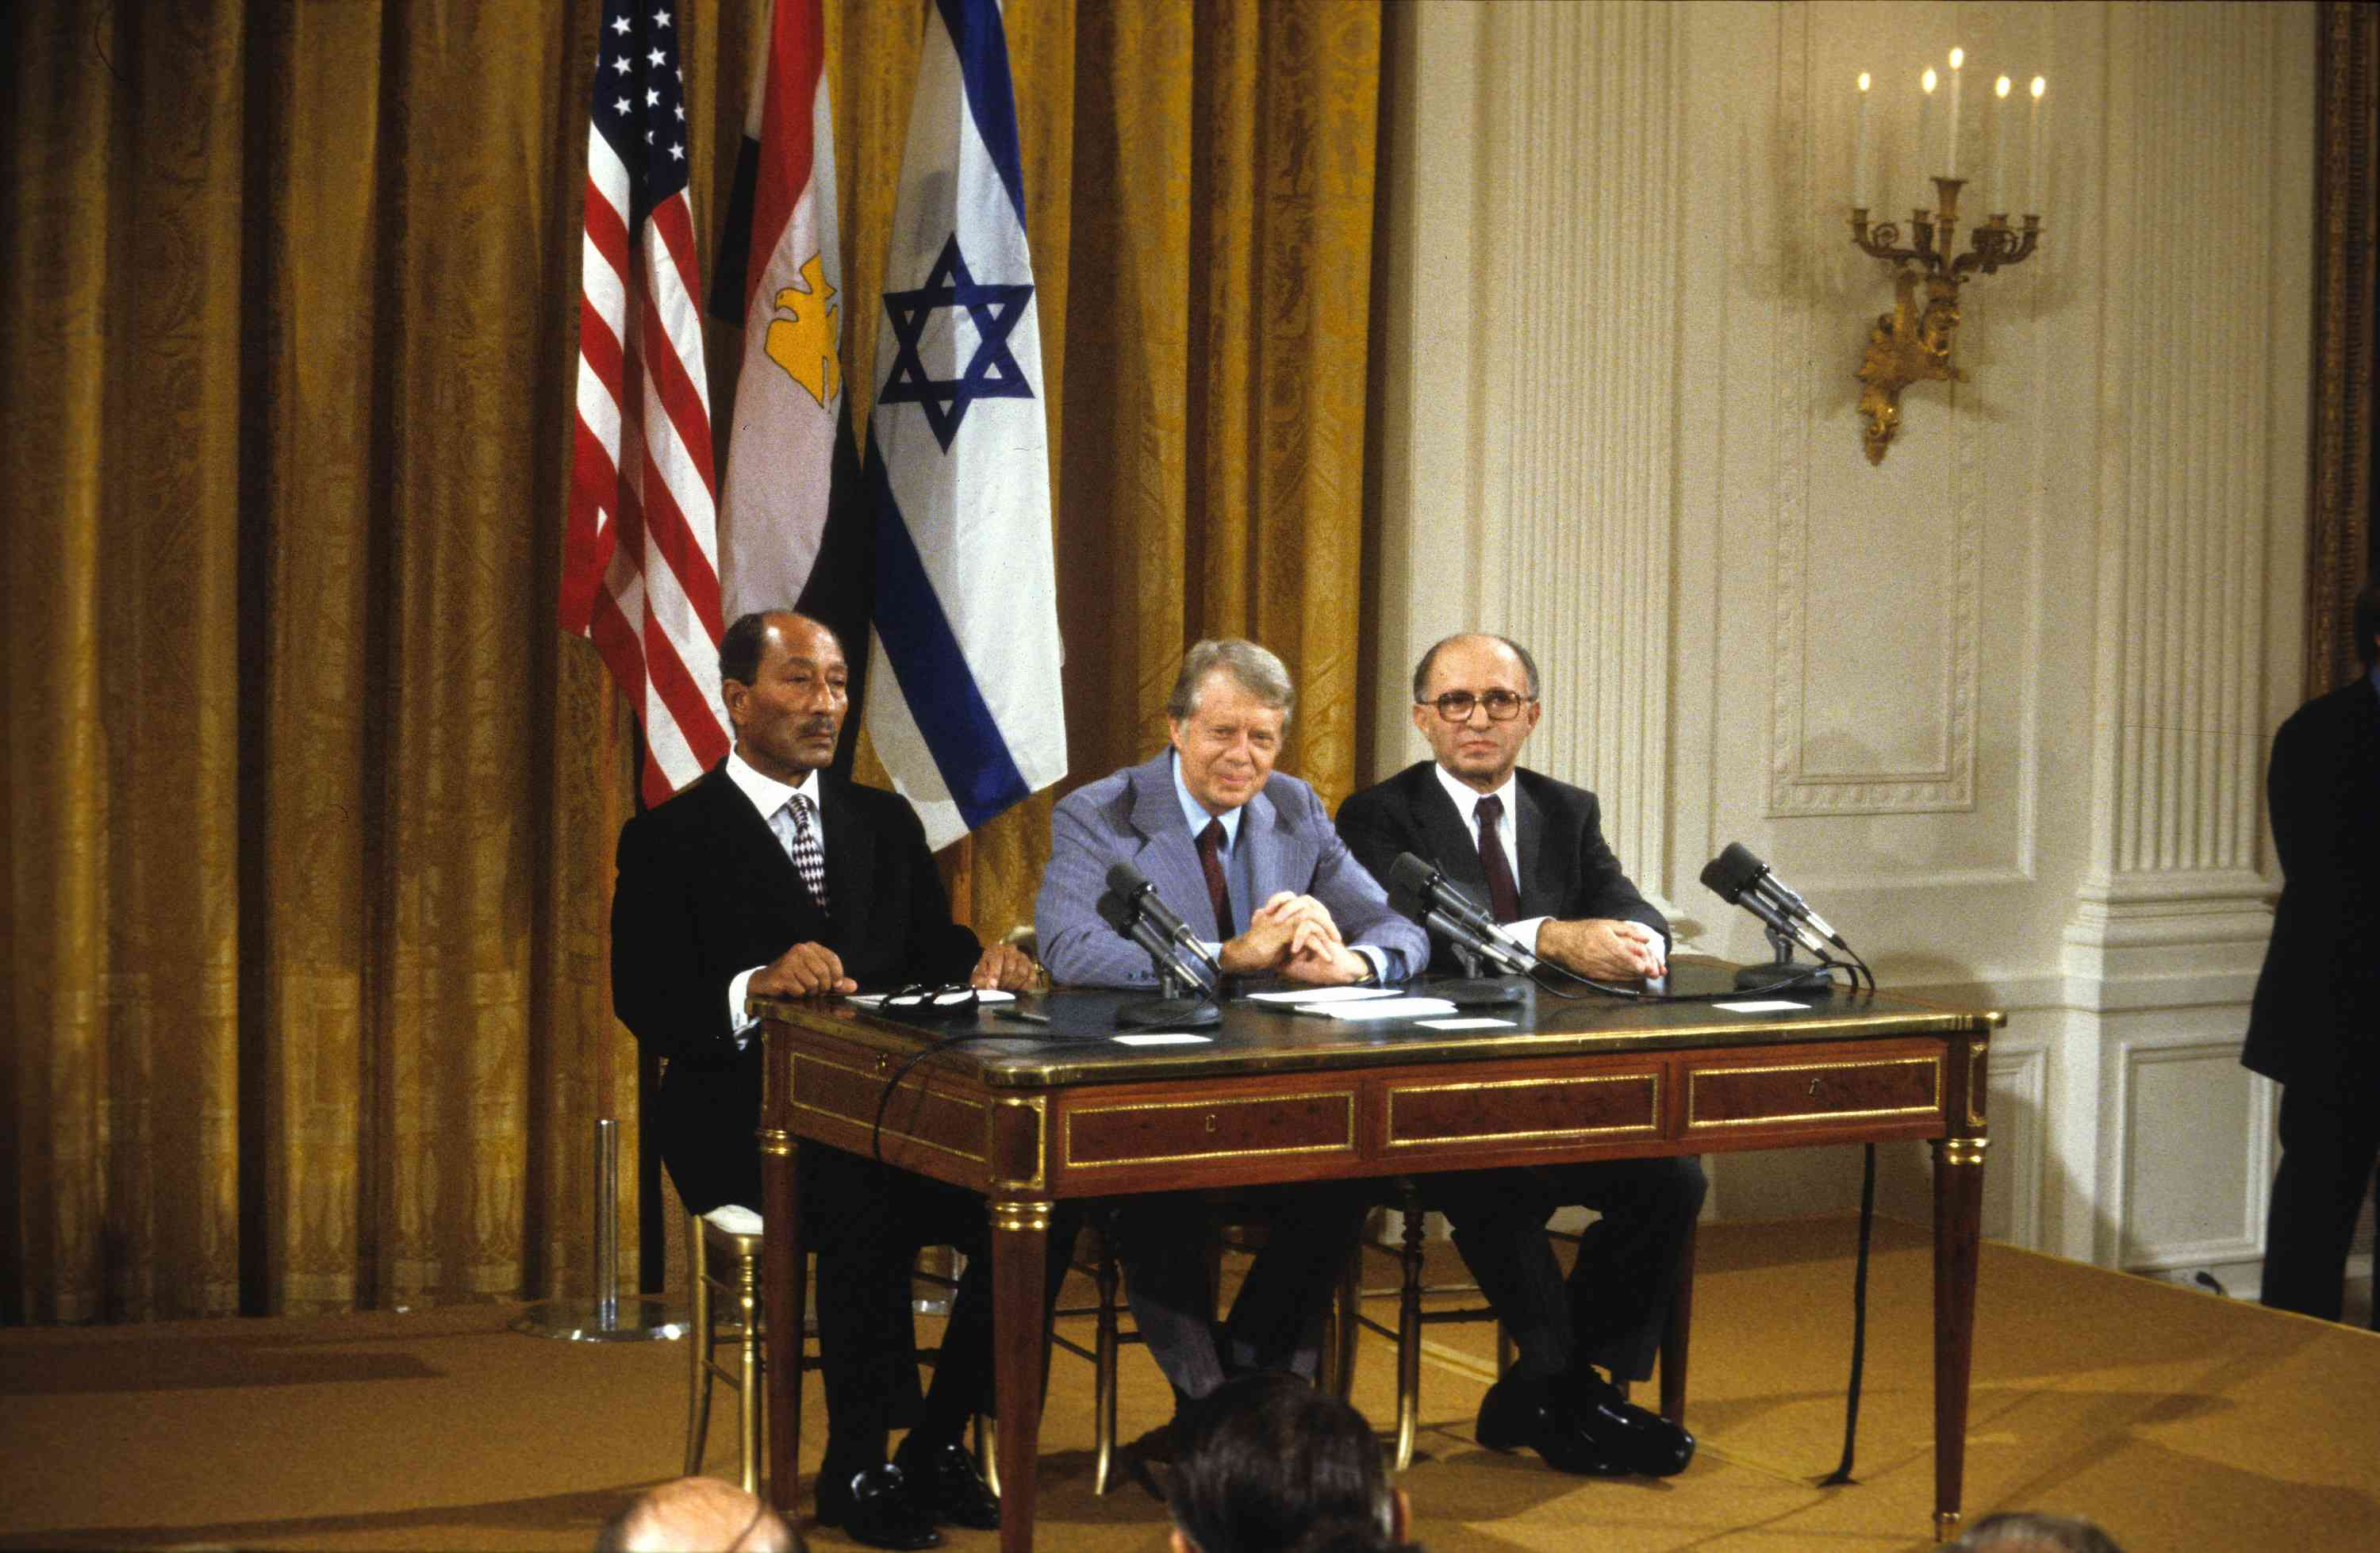 Sadat, Carter, and Begin in the White House